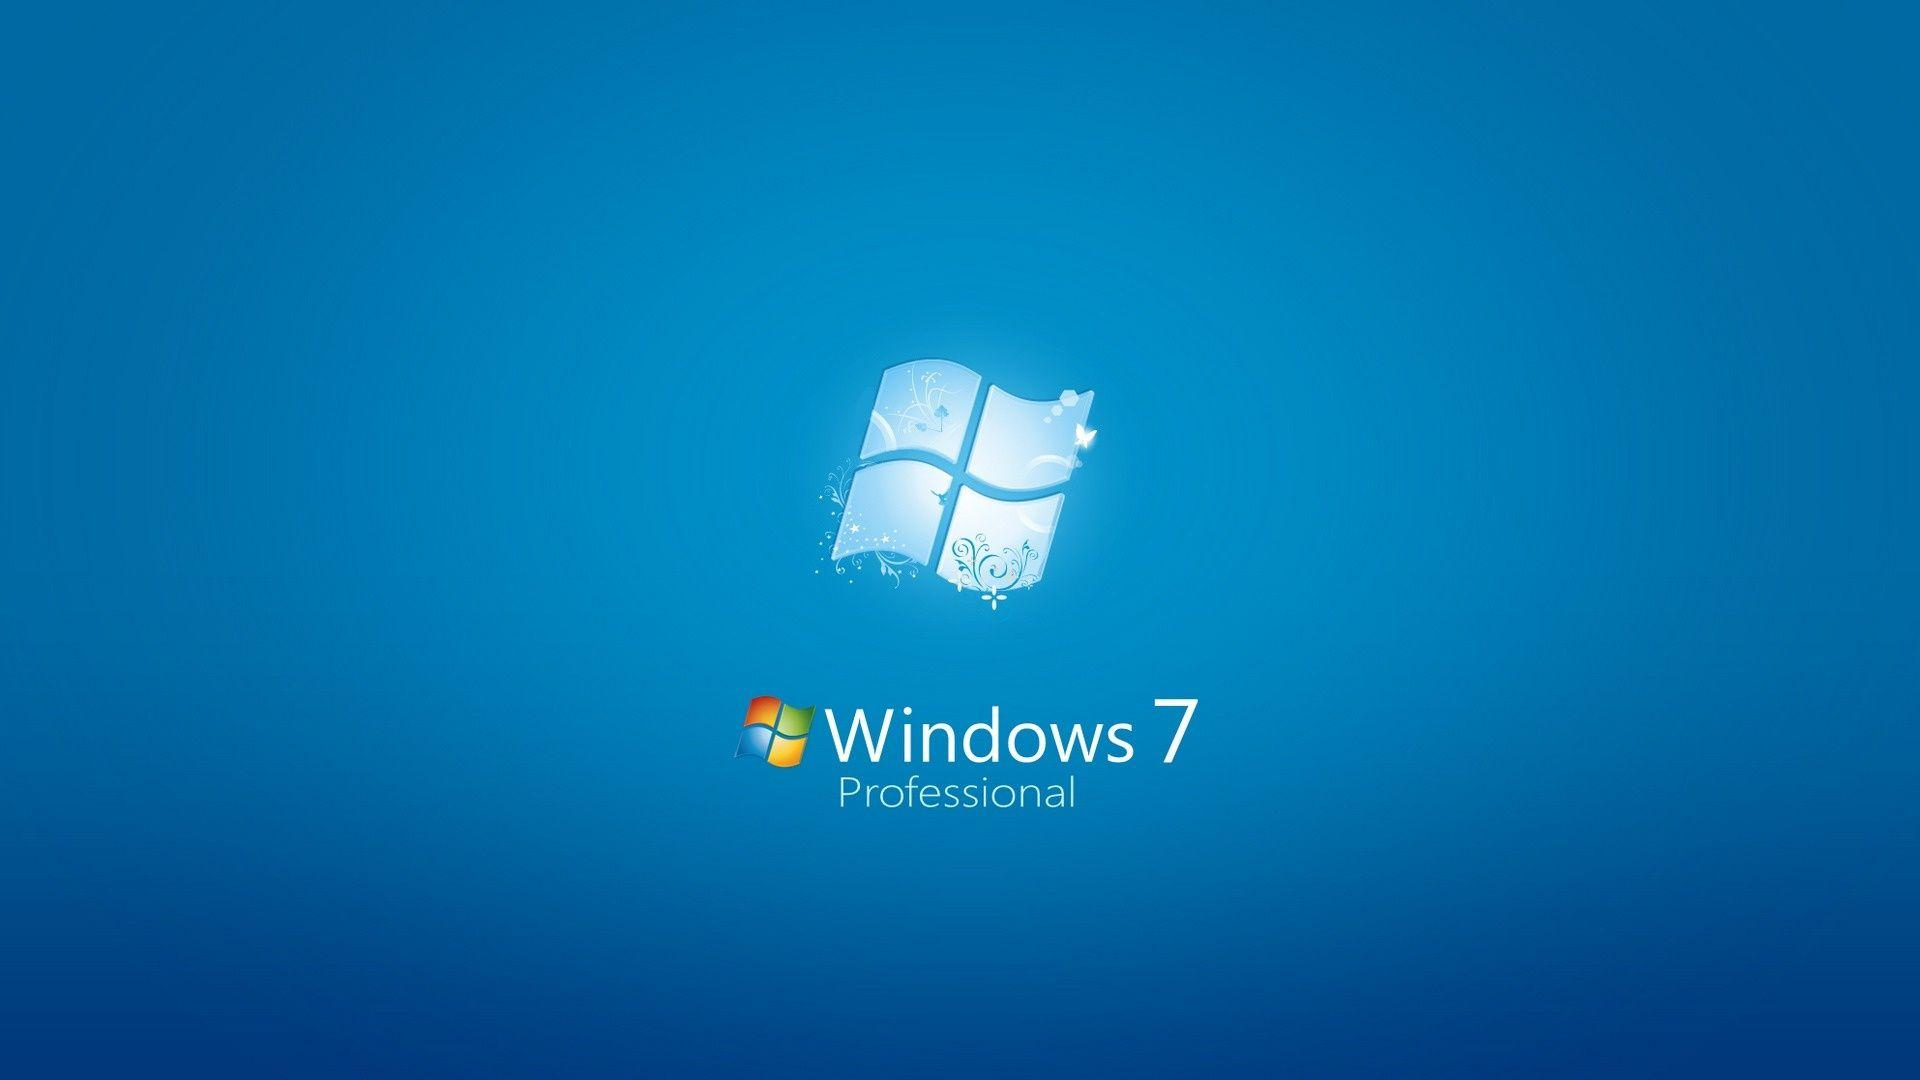 Windows 7 Ultimate II HD Wallpaper | Theme Bin - Customization, HD ...